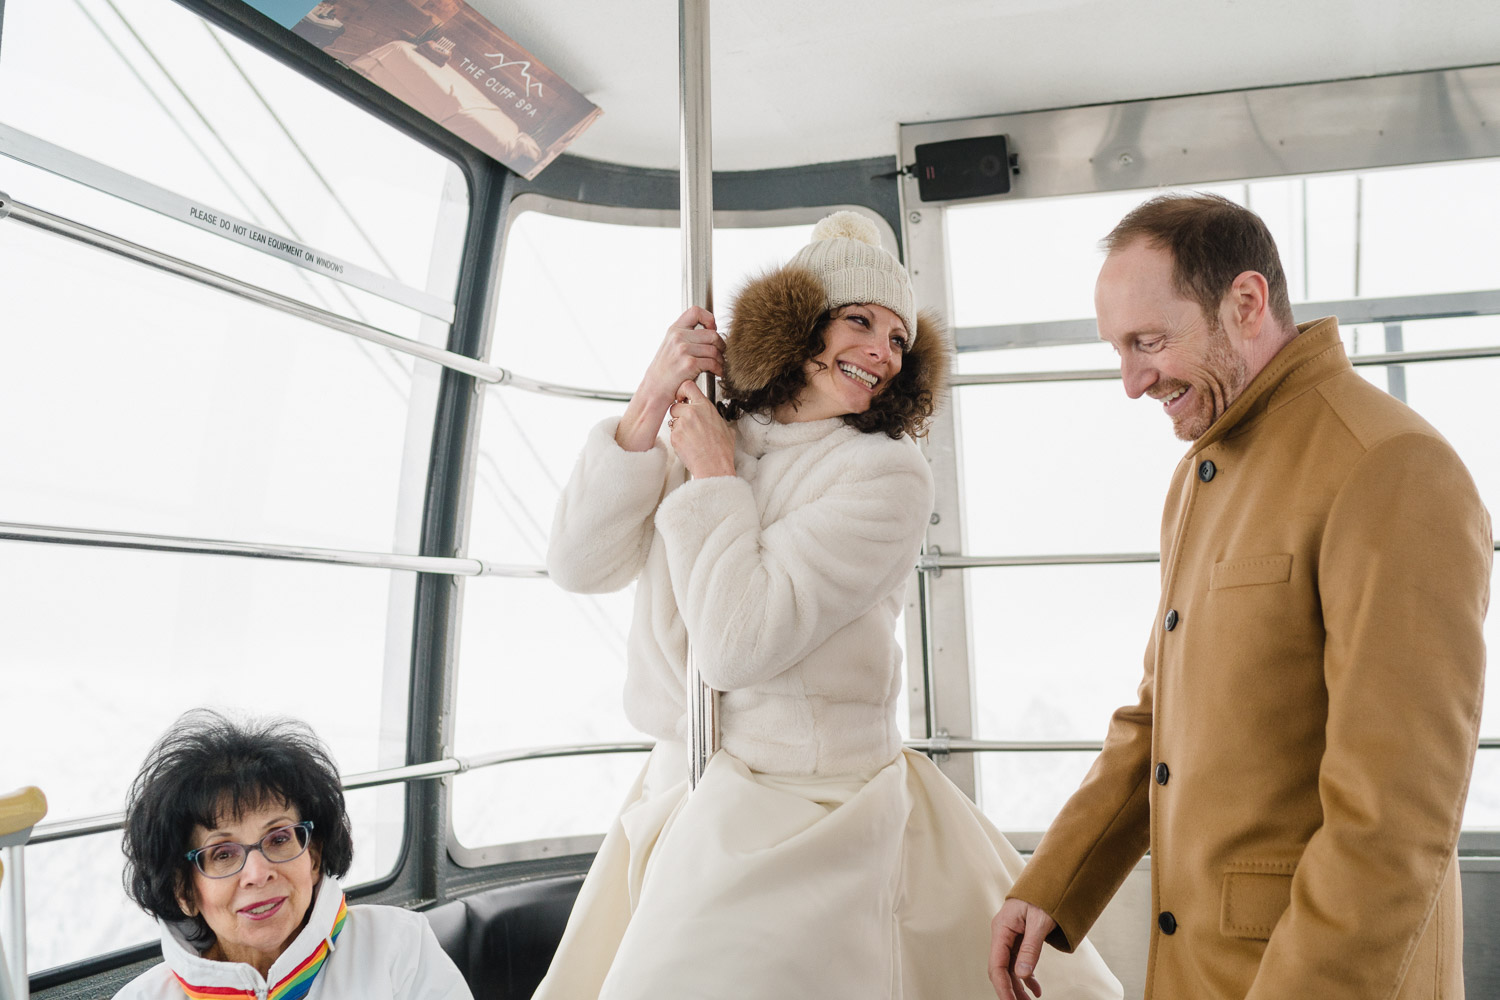 bride and groom with family tram ride snowbird resort